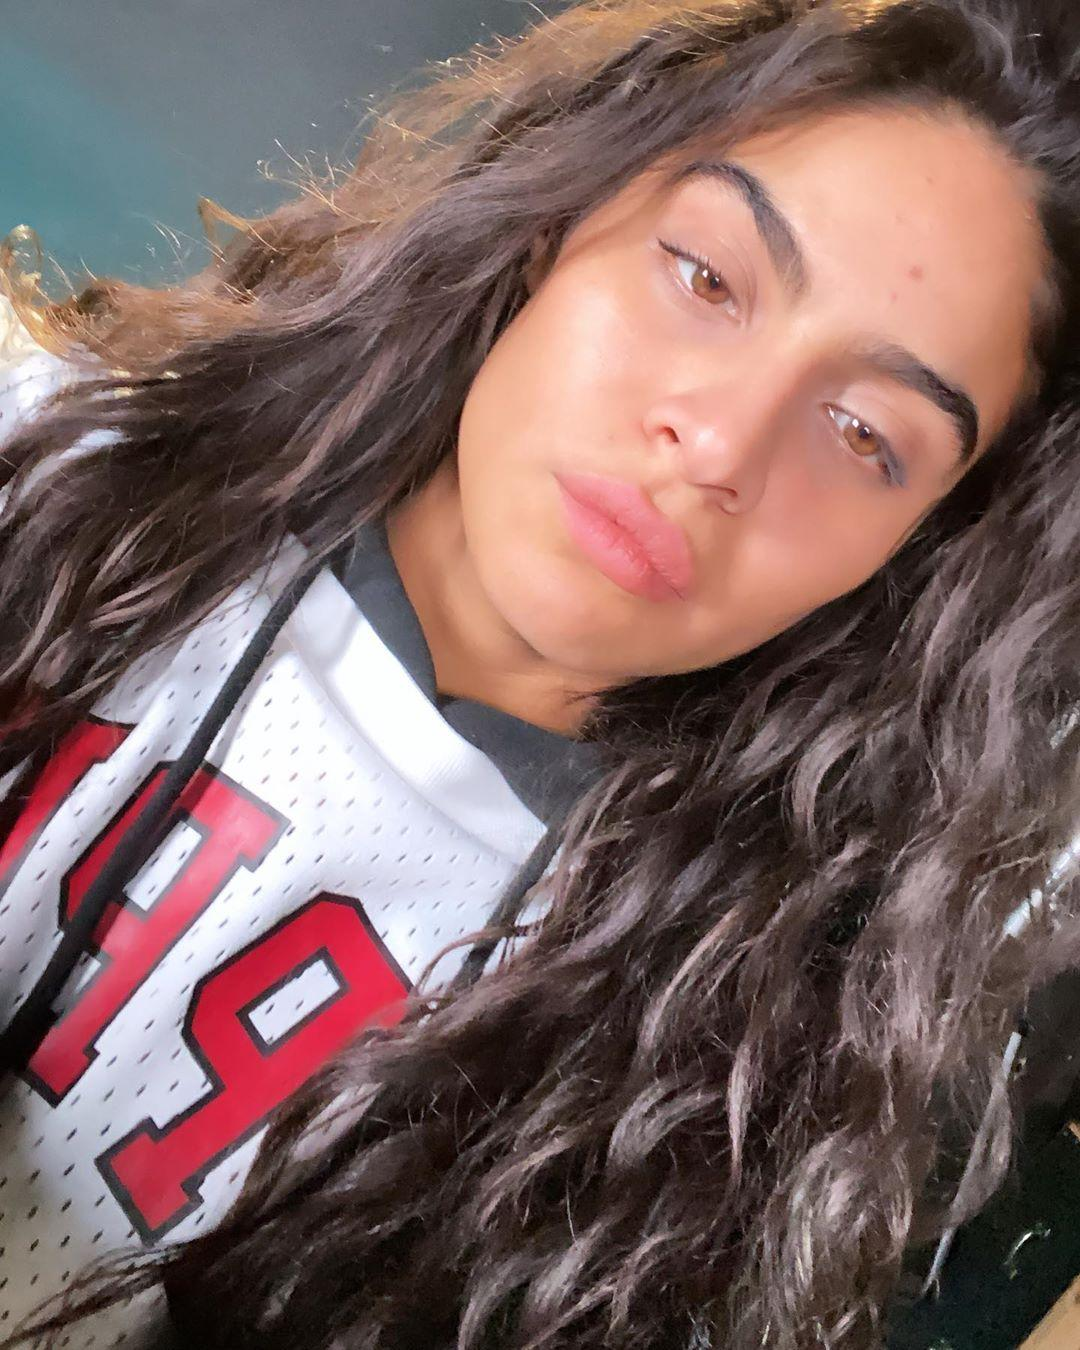 The Hottest Photos Of Jessie Reyez Will Make Your Day